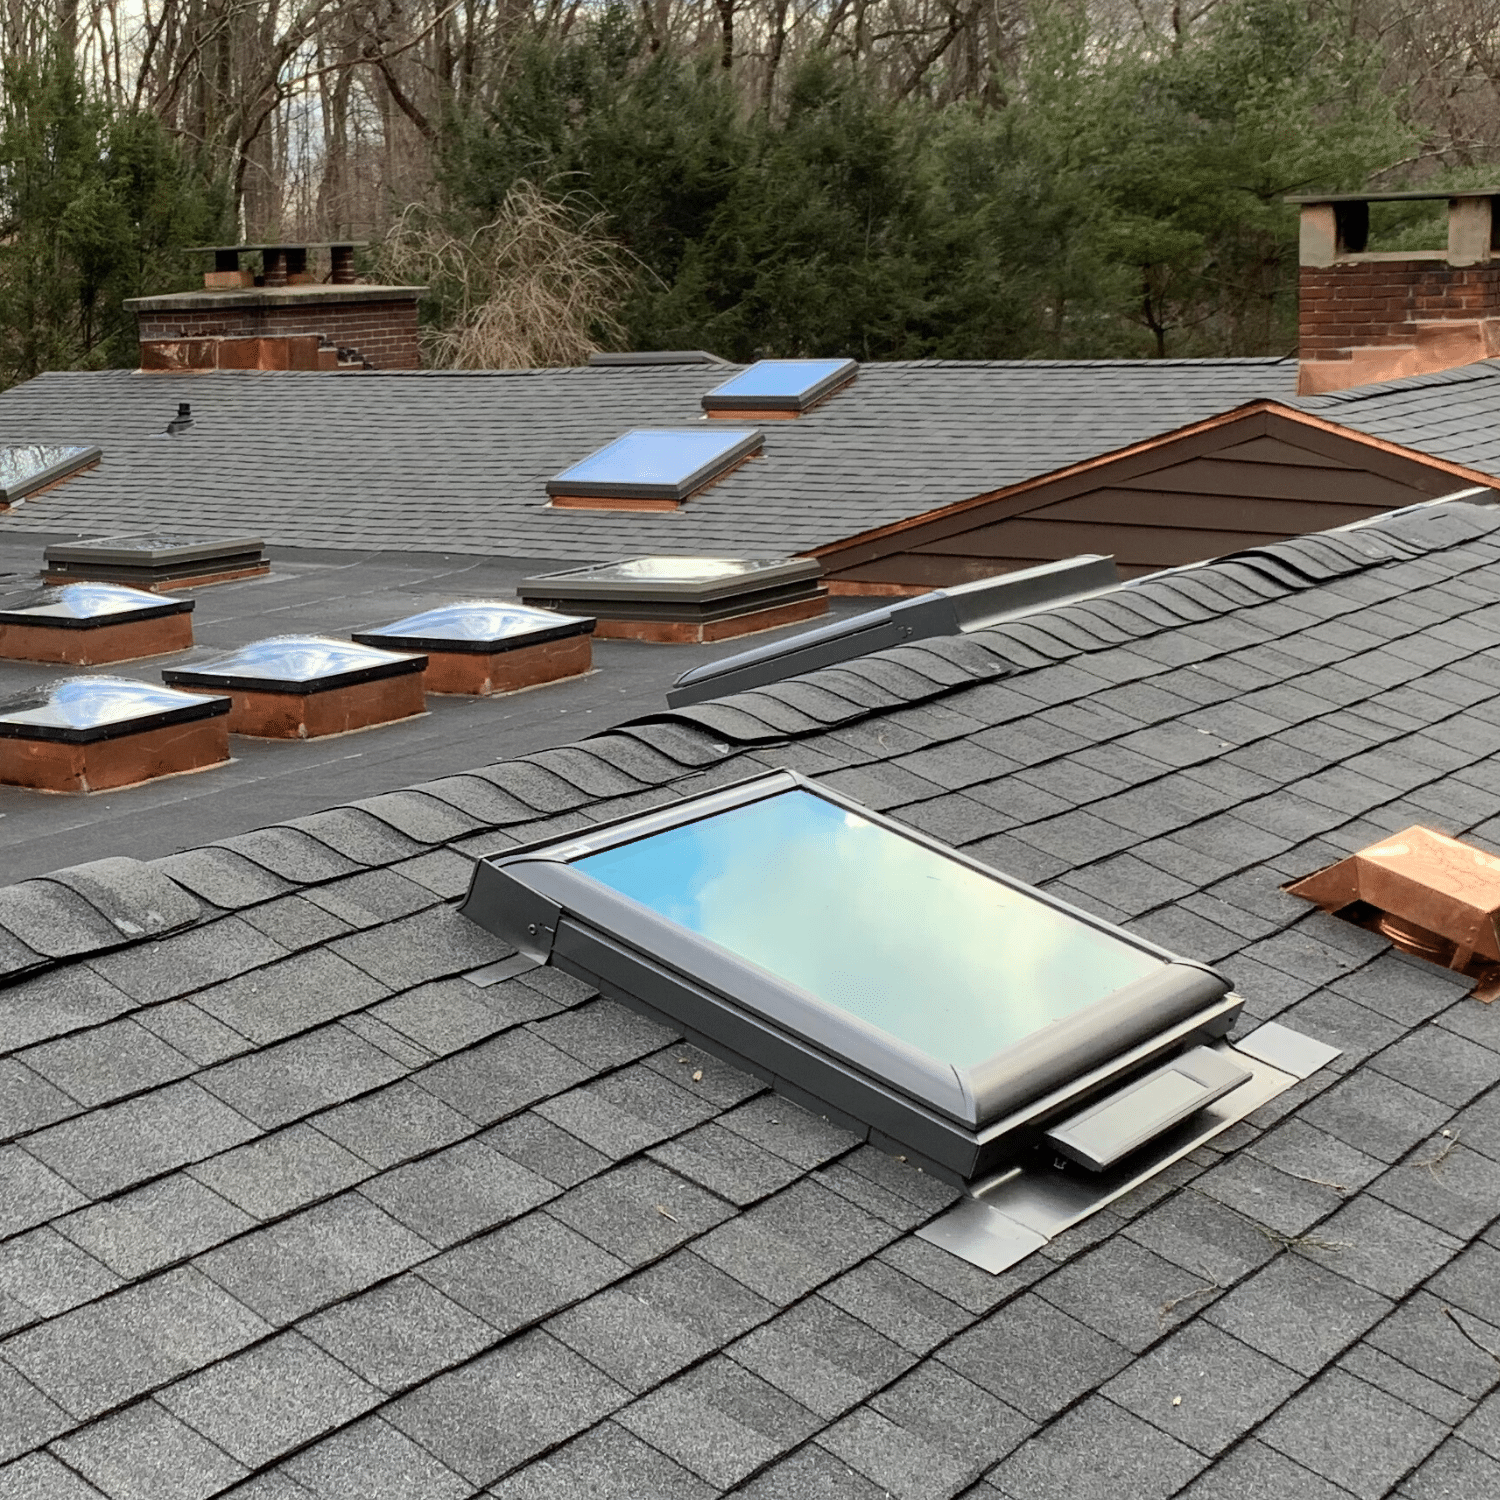 New asphalt roof installation with skylights and roof windows